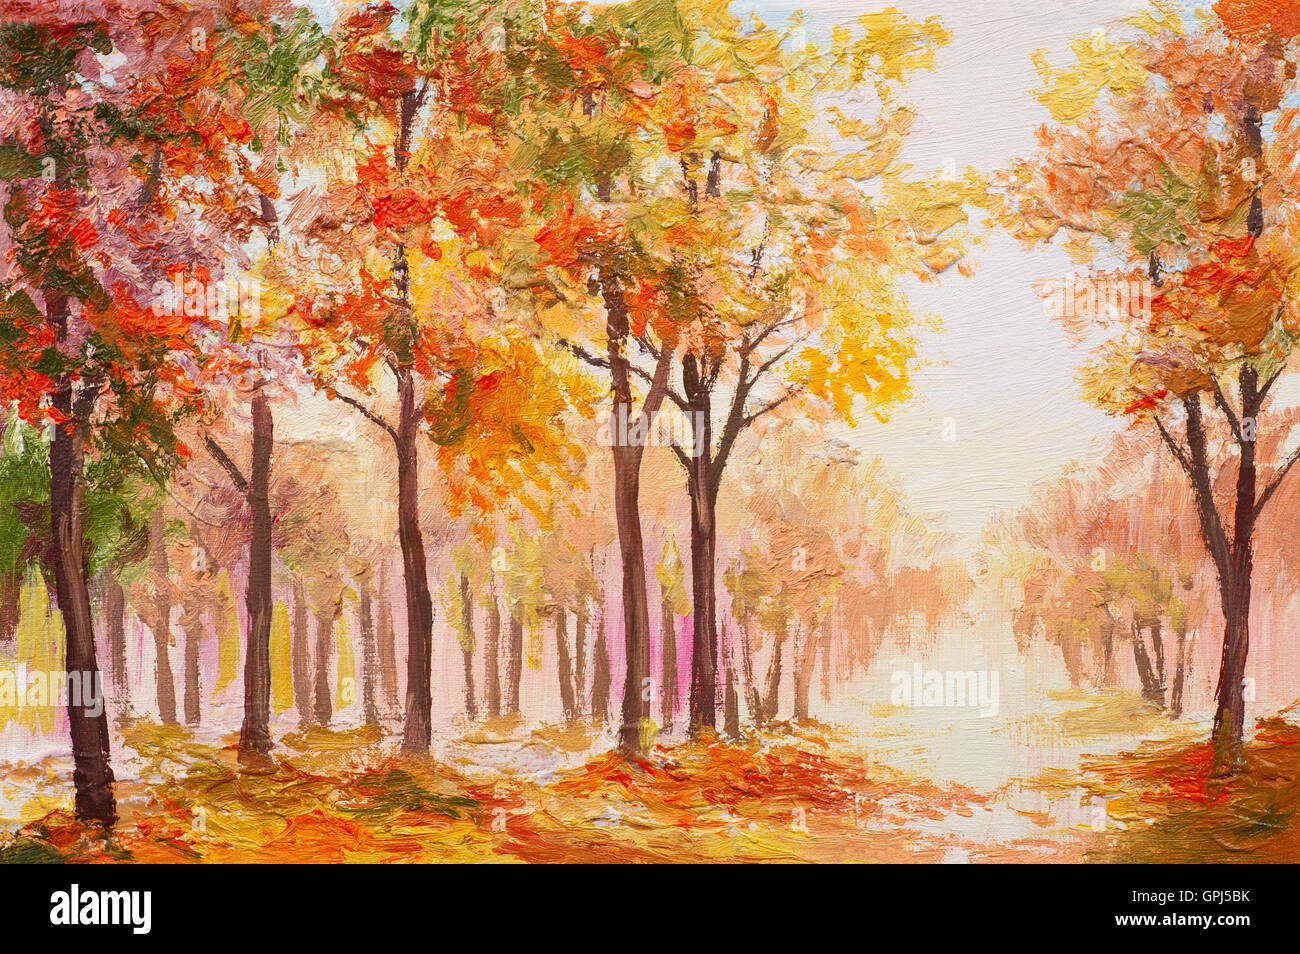 Oil painting landscape - colorful autumn forest - Stock Image